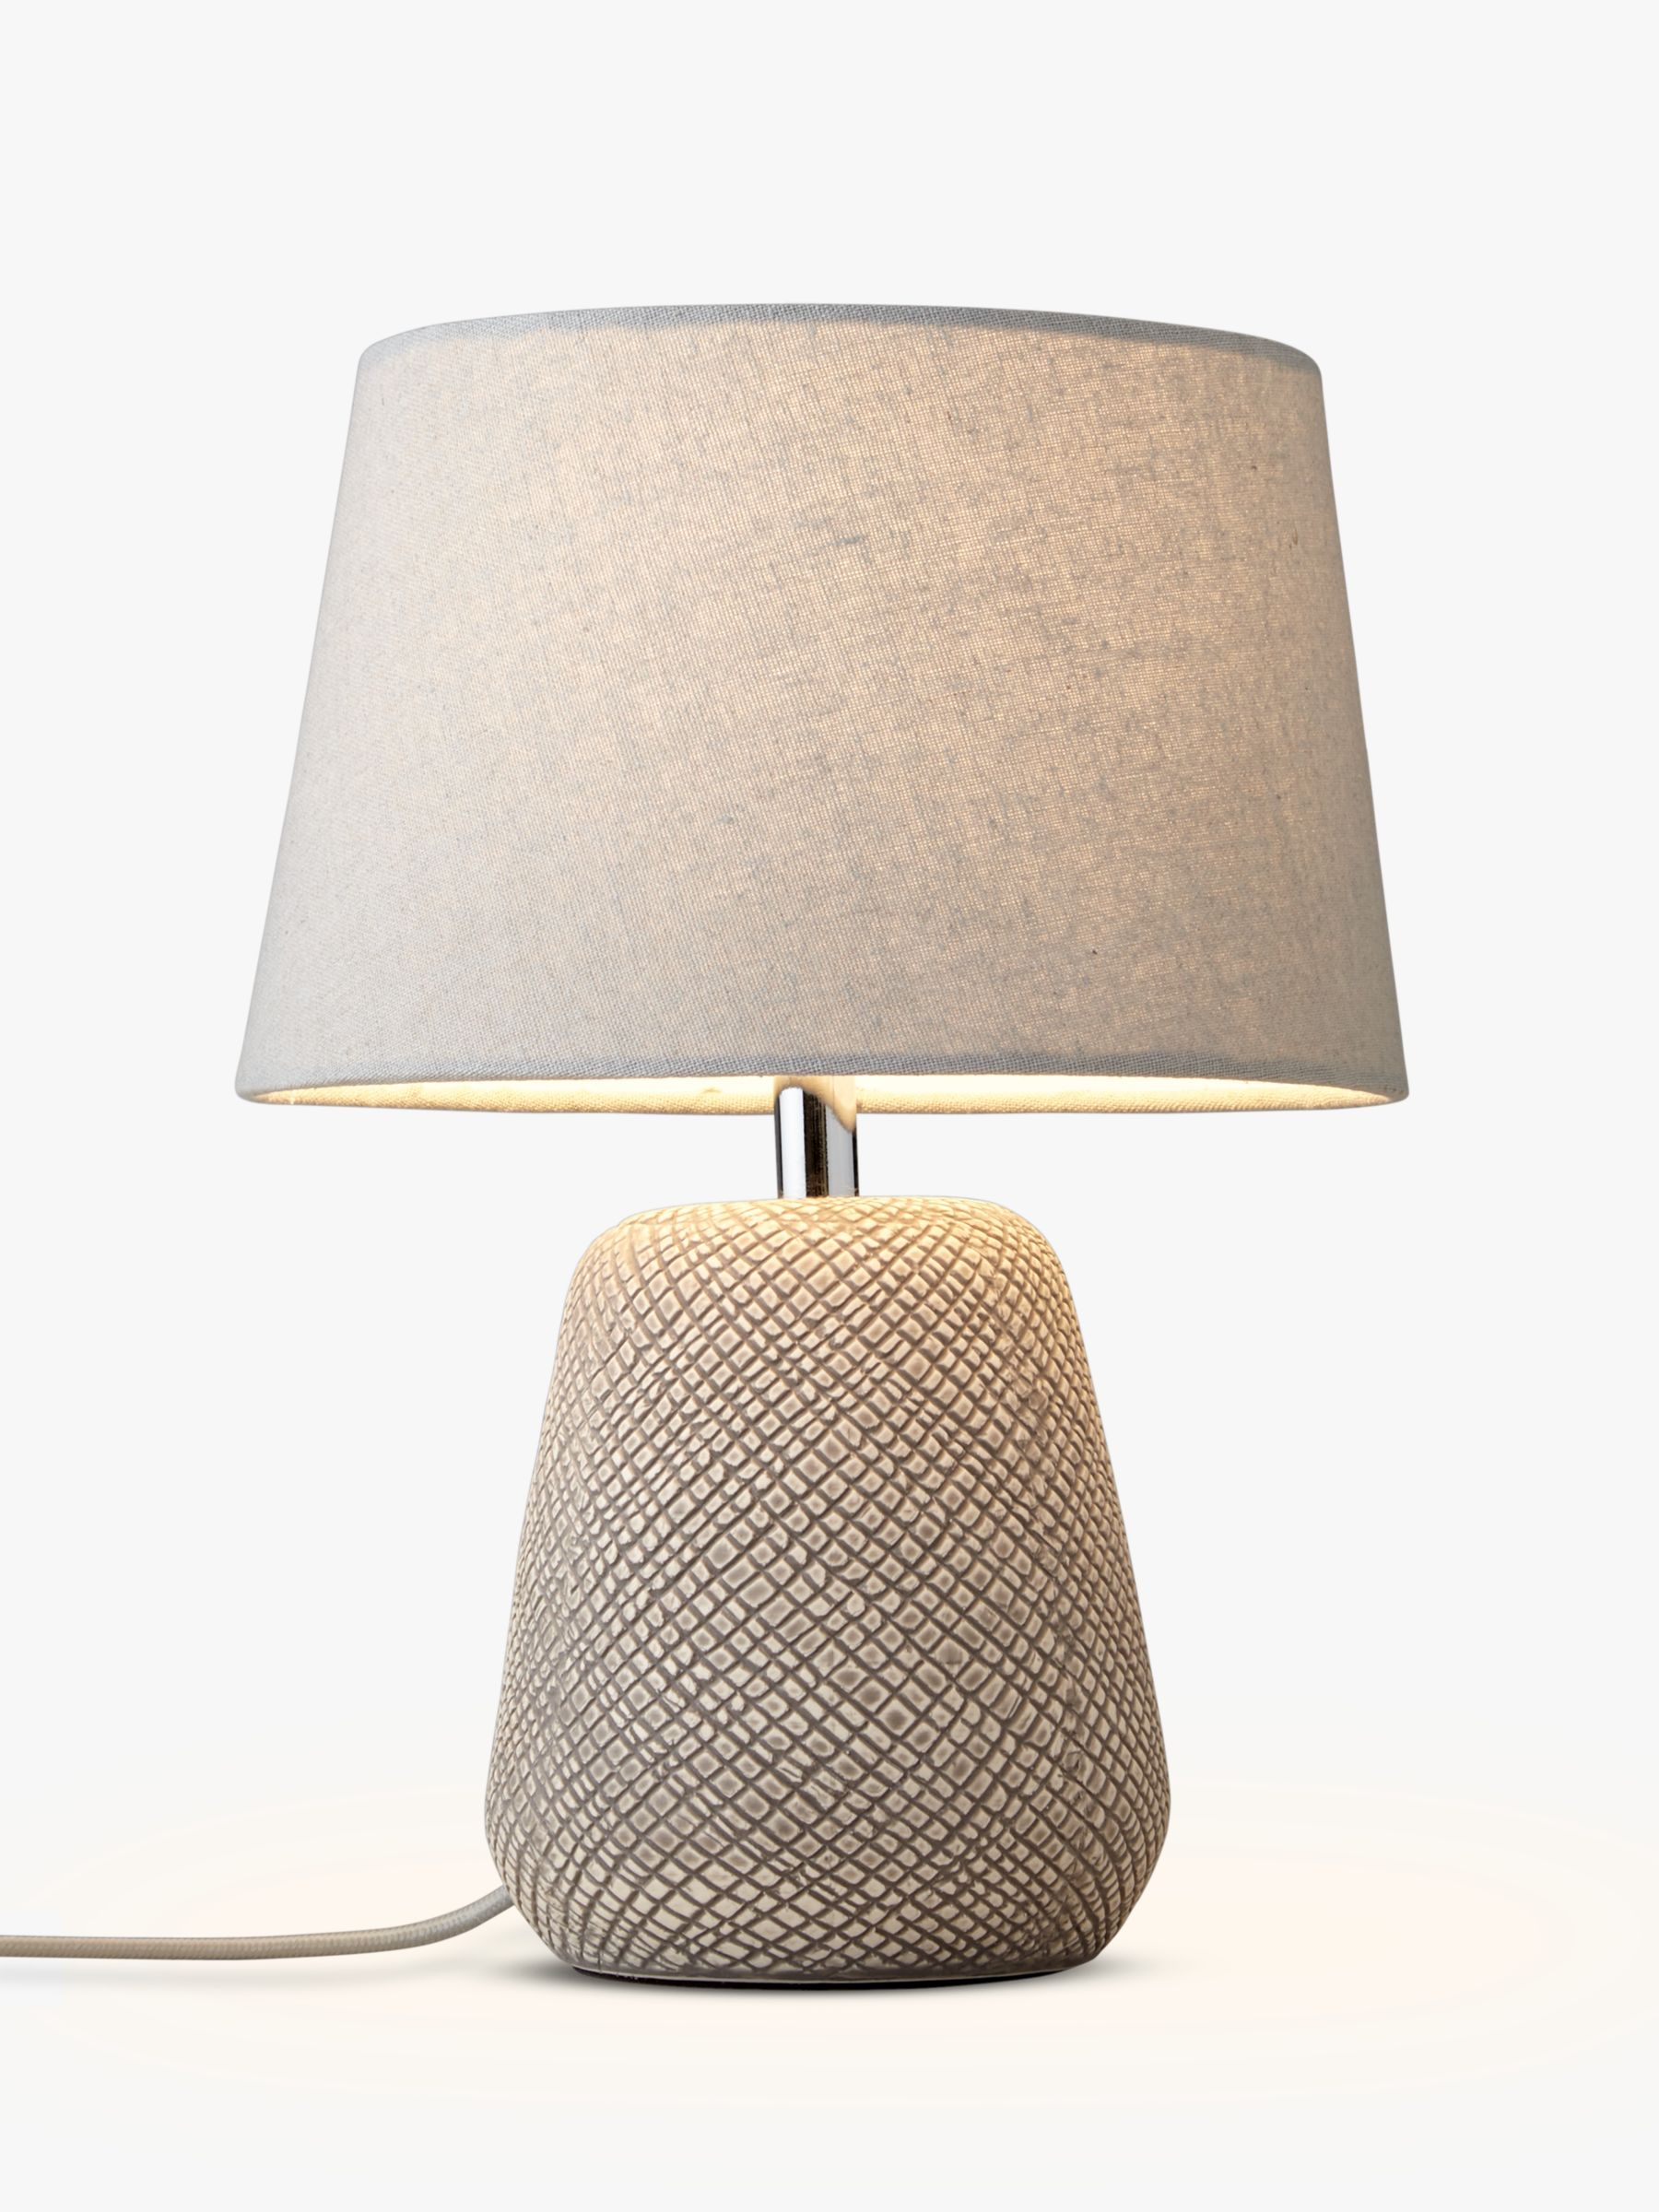 John lewis iona small table lamp bluewater 4000 geotapseo Image collections